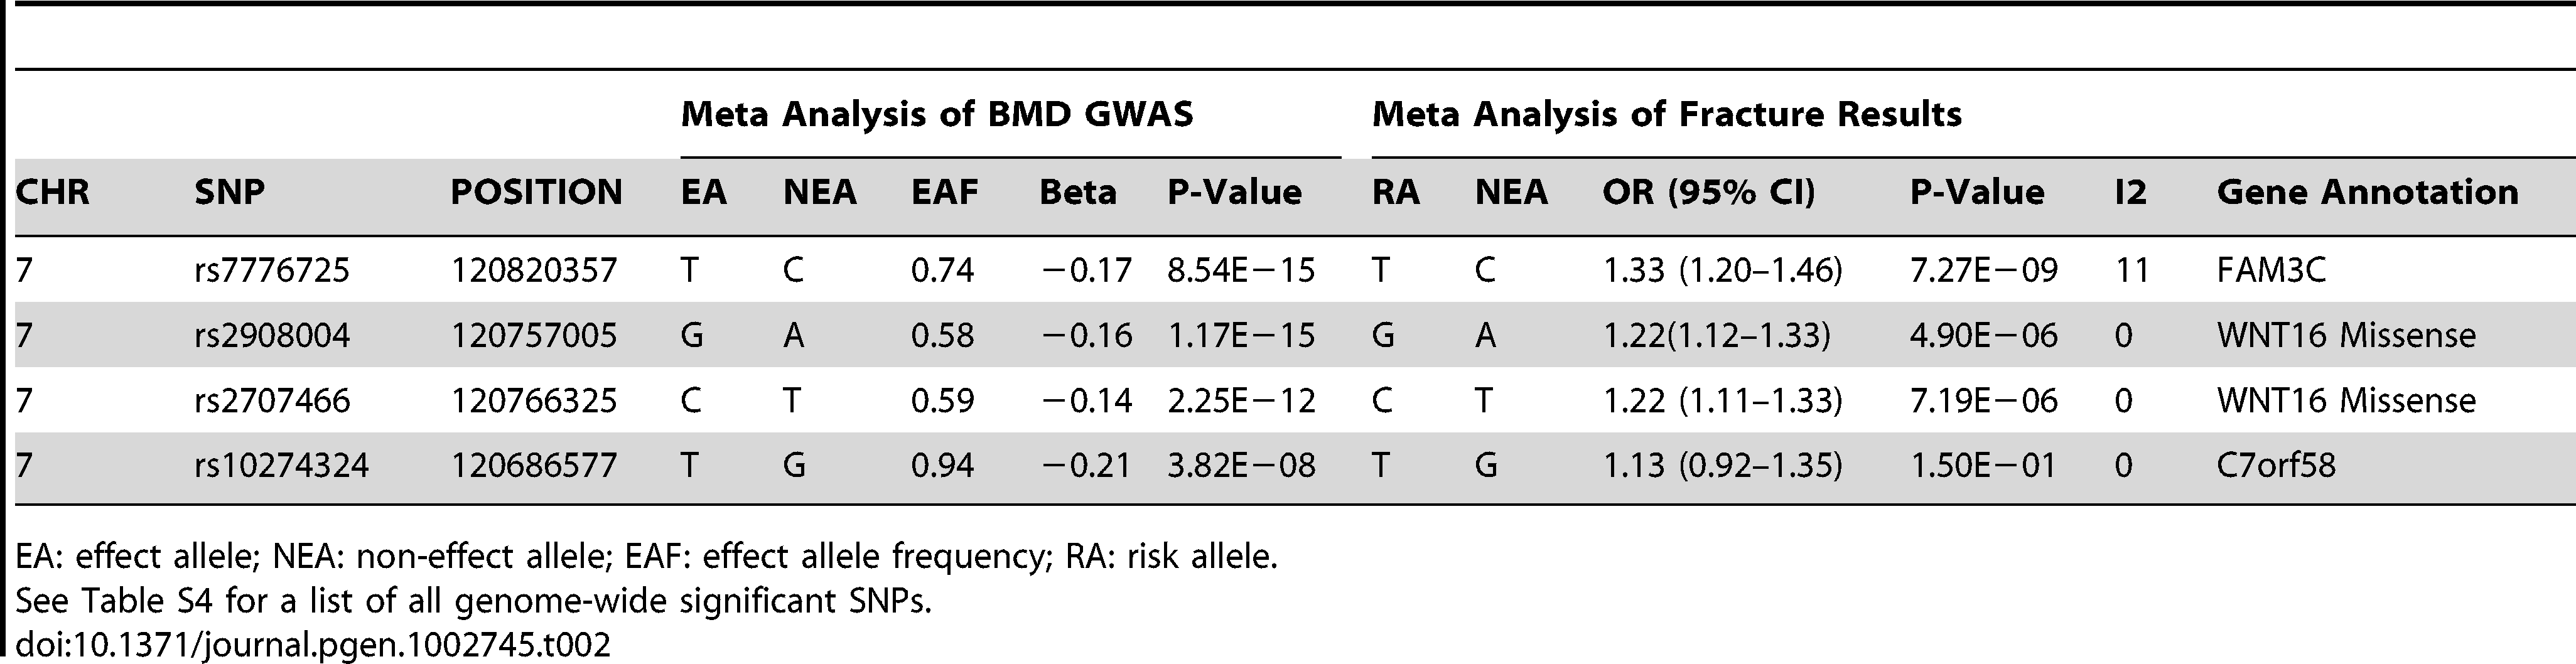 Association results of forearm BMD meta-analysis and fracture for selected SNPs.